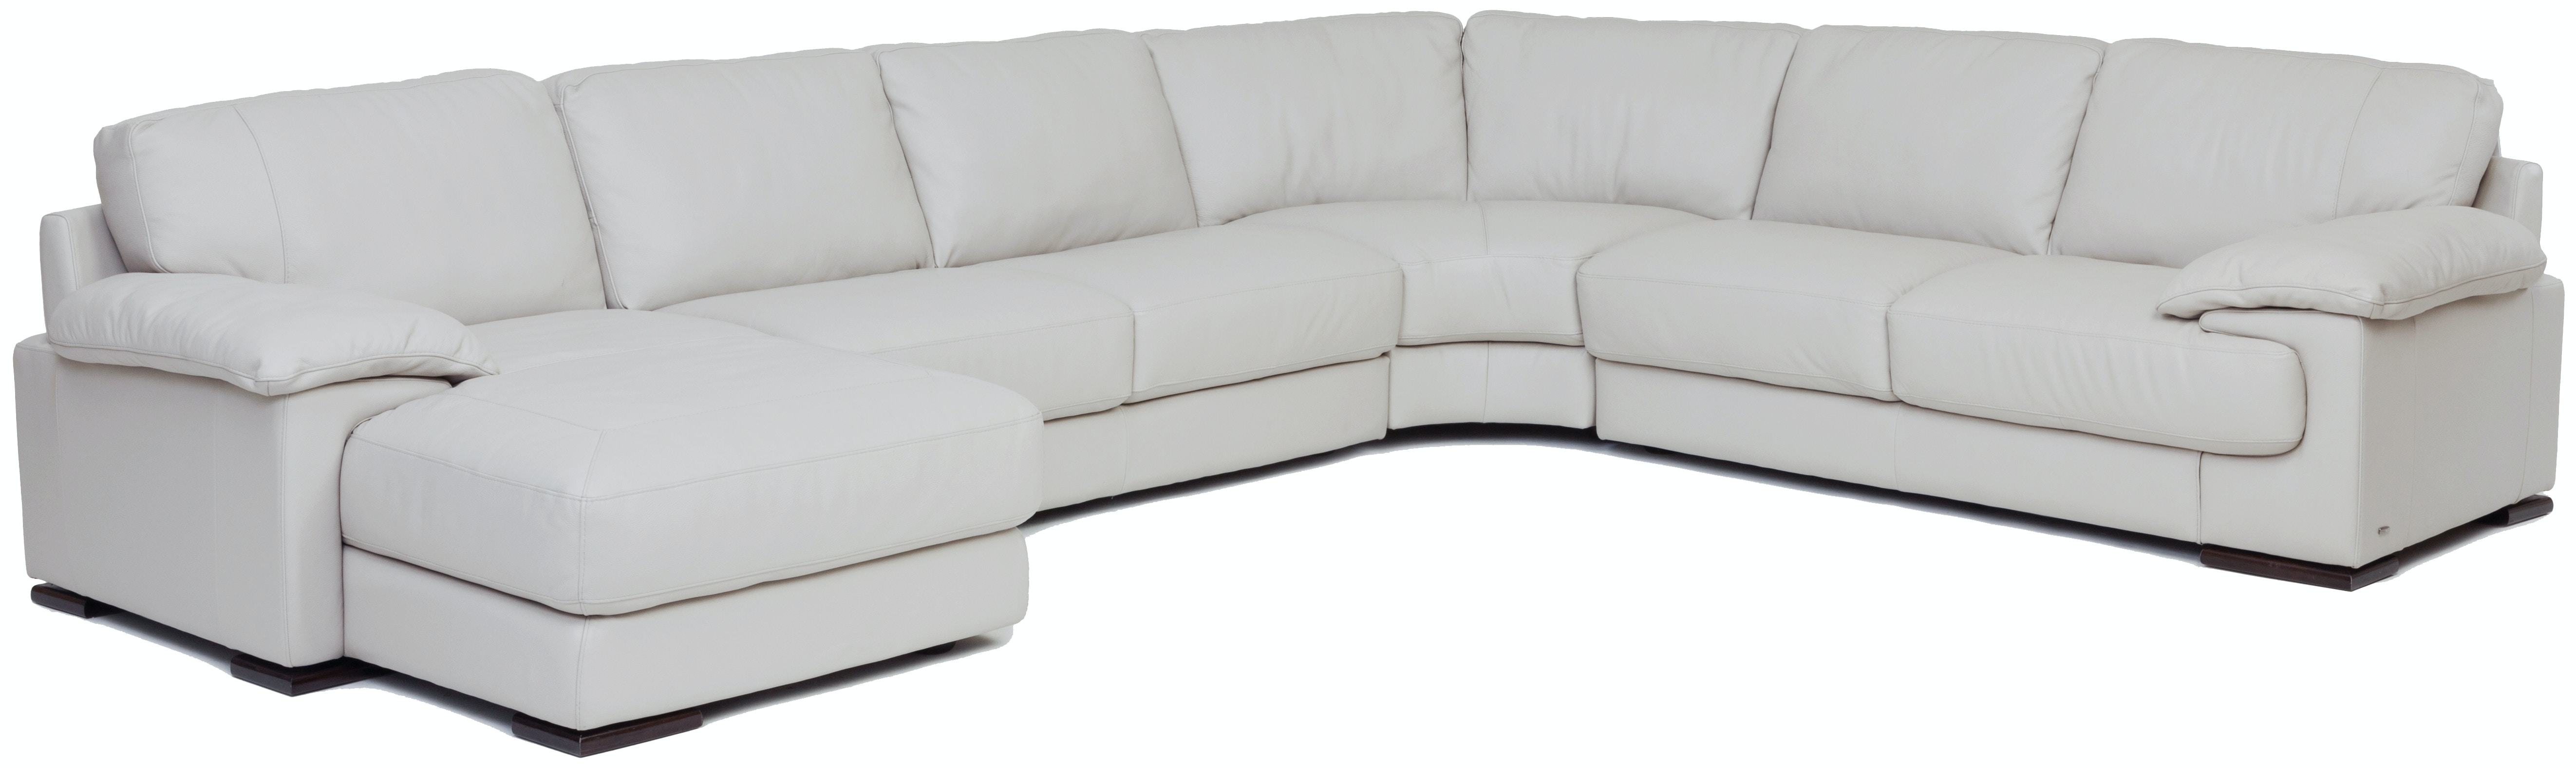 Denver 4 Piece Leather Chaise Sectional (LAF)   SMOKE GP:L115